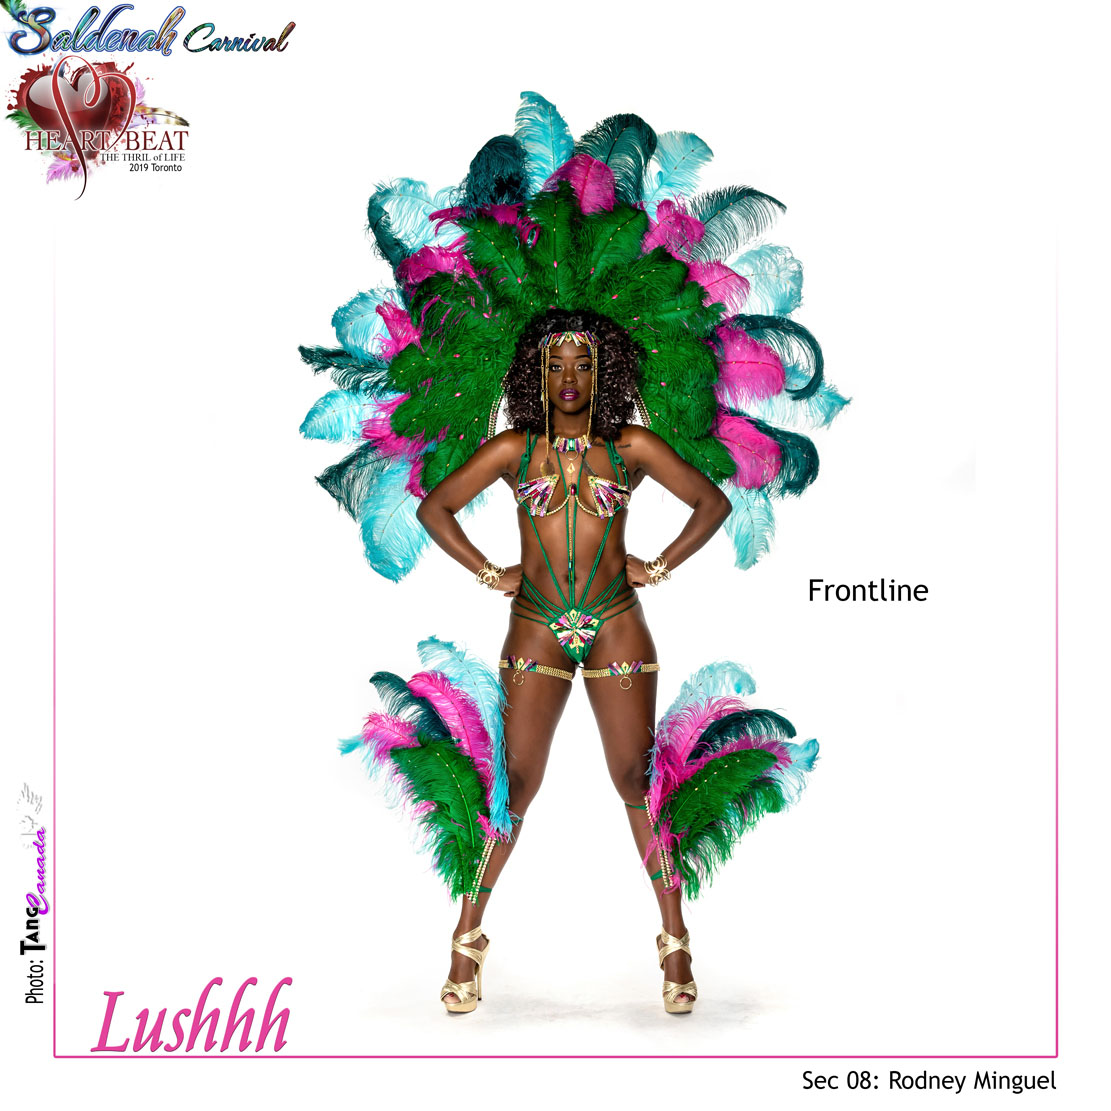 Saldenah Carnival Section 8 Lushhh